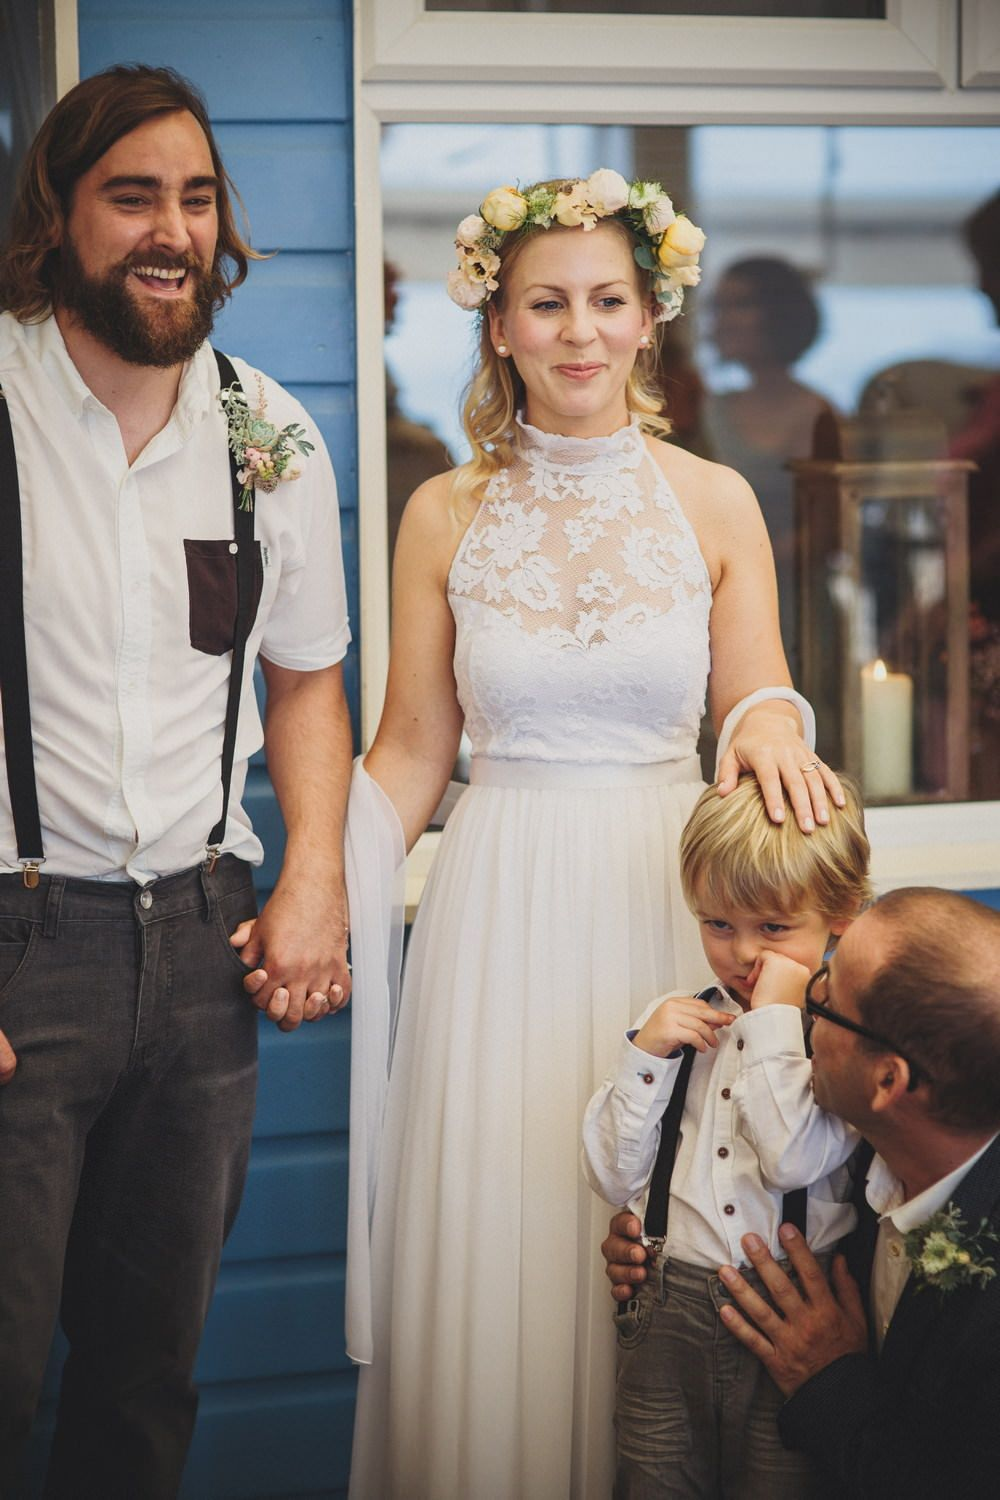 Bohemian Wedding Dress From Grace Loves Lace At A Laid Back